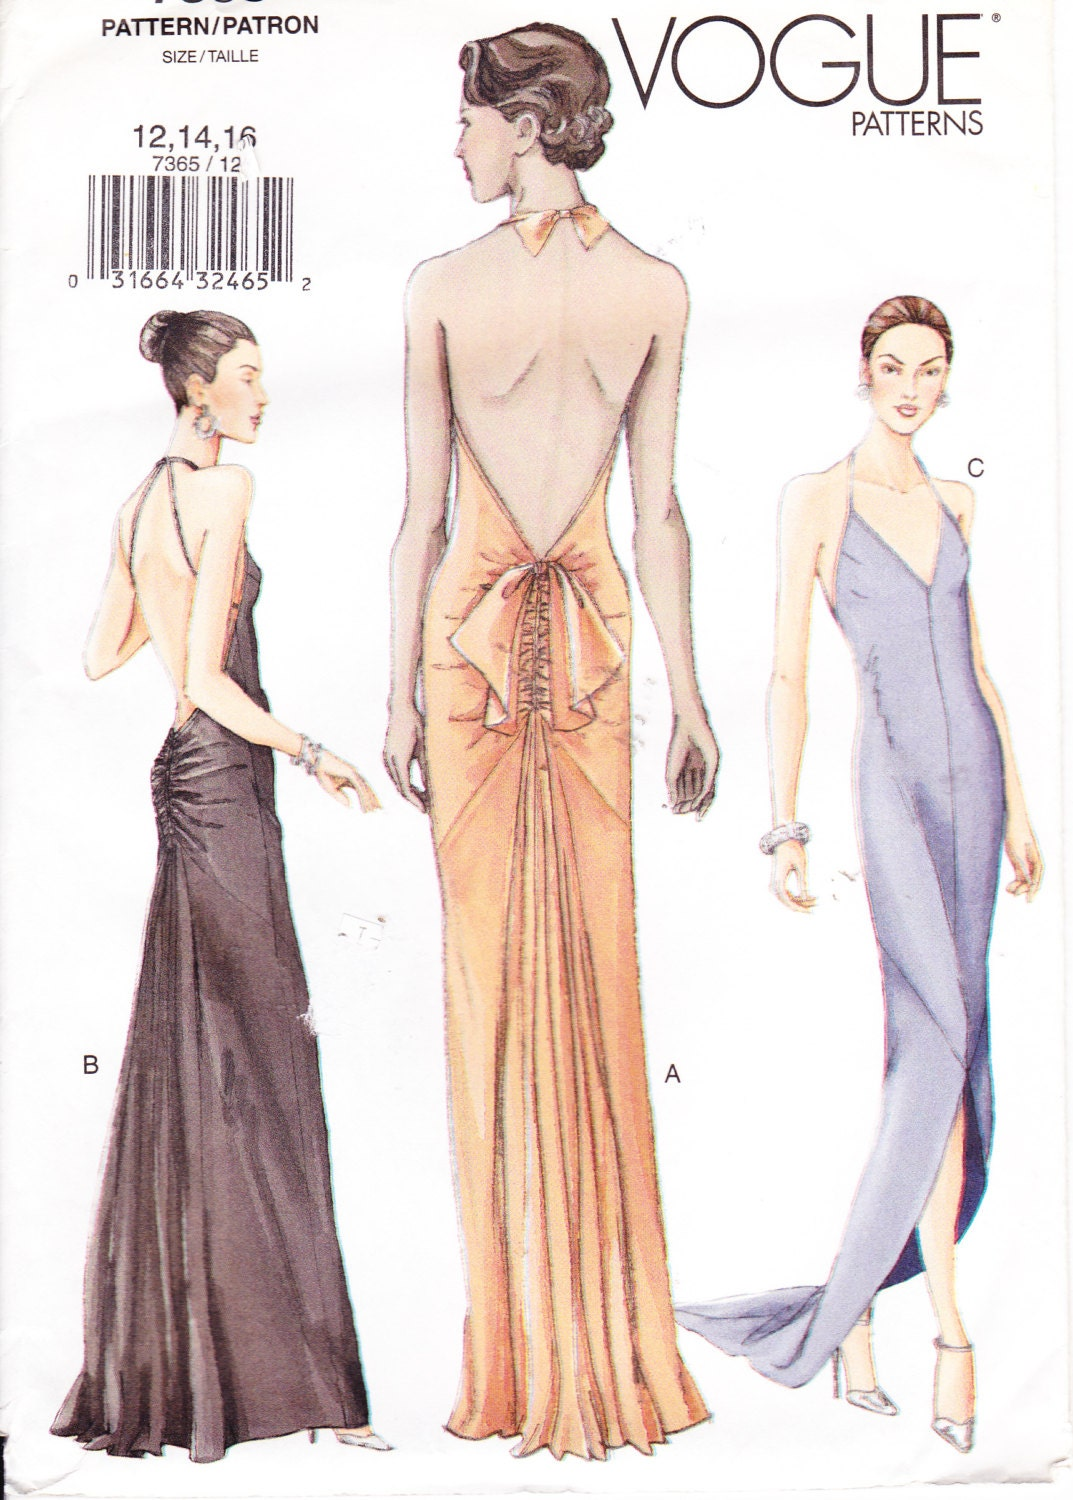 Sewing patterns for 1920s dresses gallery craft decoration ideas 1920s wedding dress sewing patterns high cut wedding dresses 1920s wedding dress sewing patterns 60 jeuxipadfo jeuxipadfo Gallery